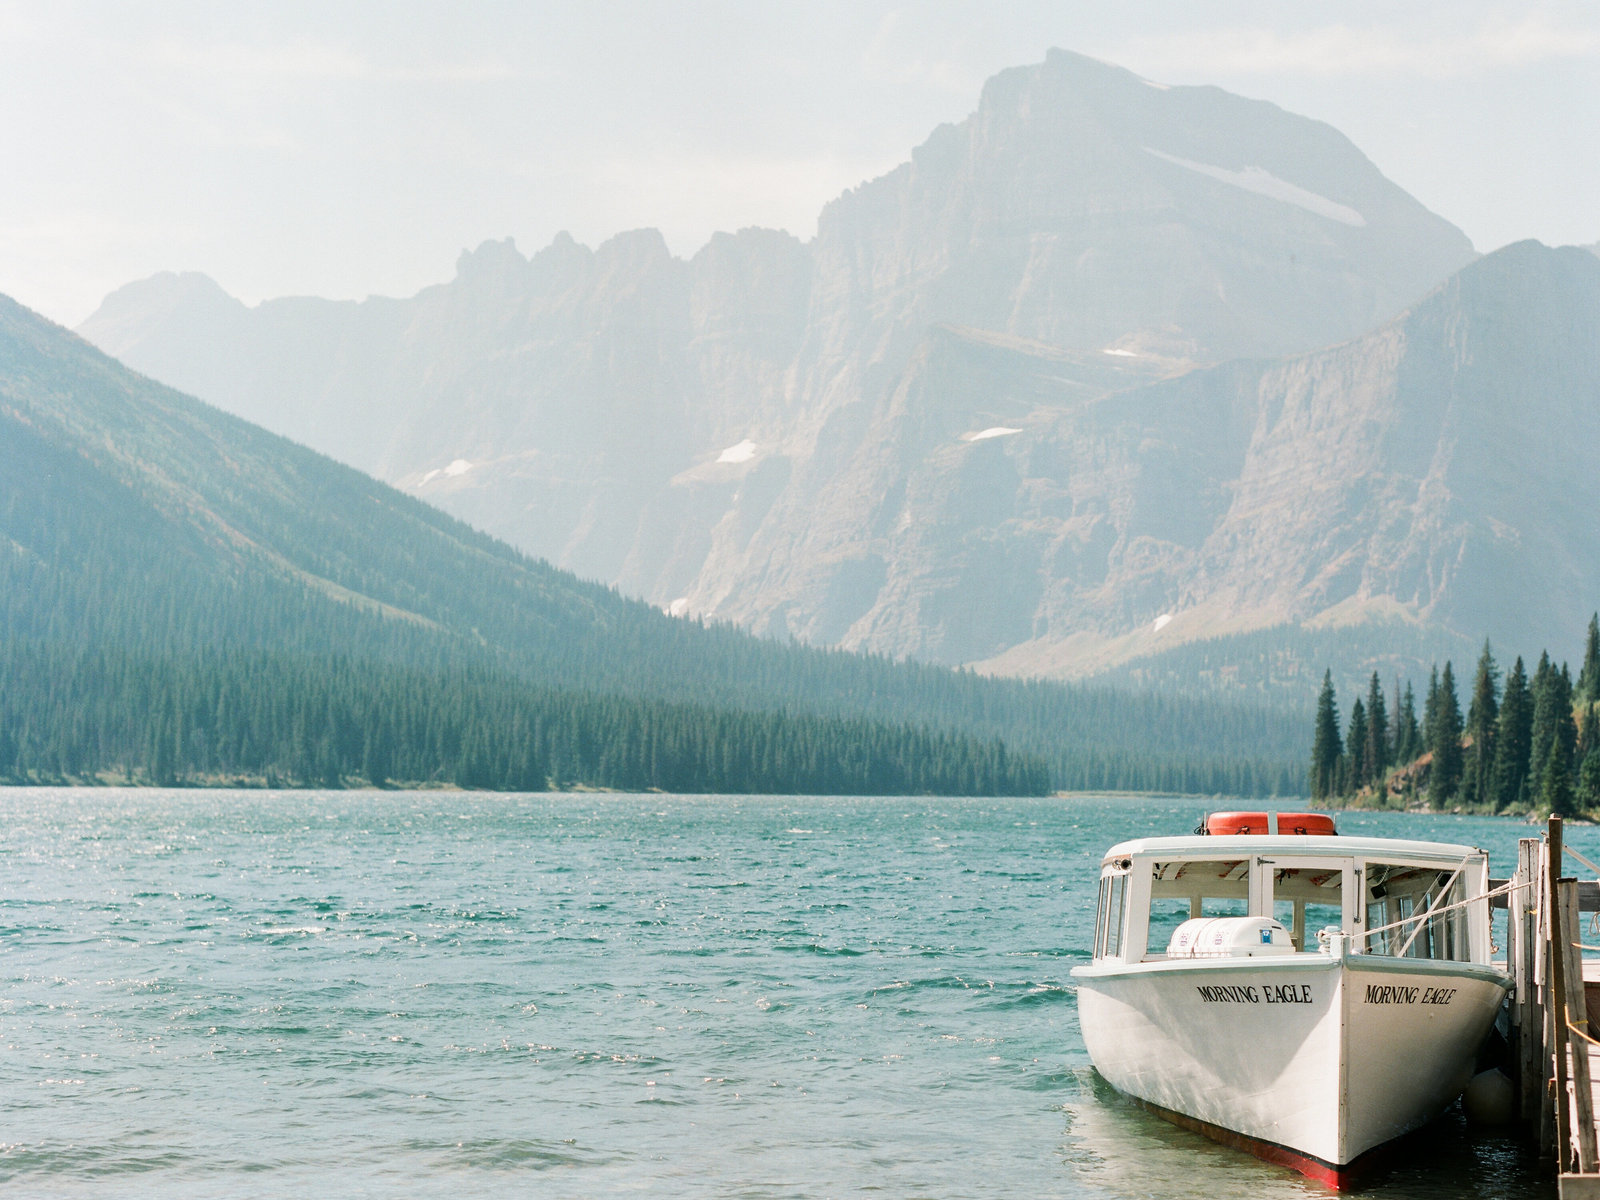 glacier-national-park-boat-in-lake-photo